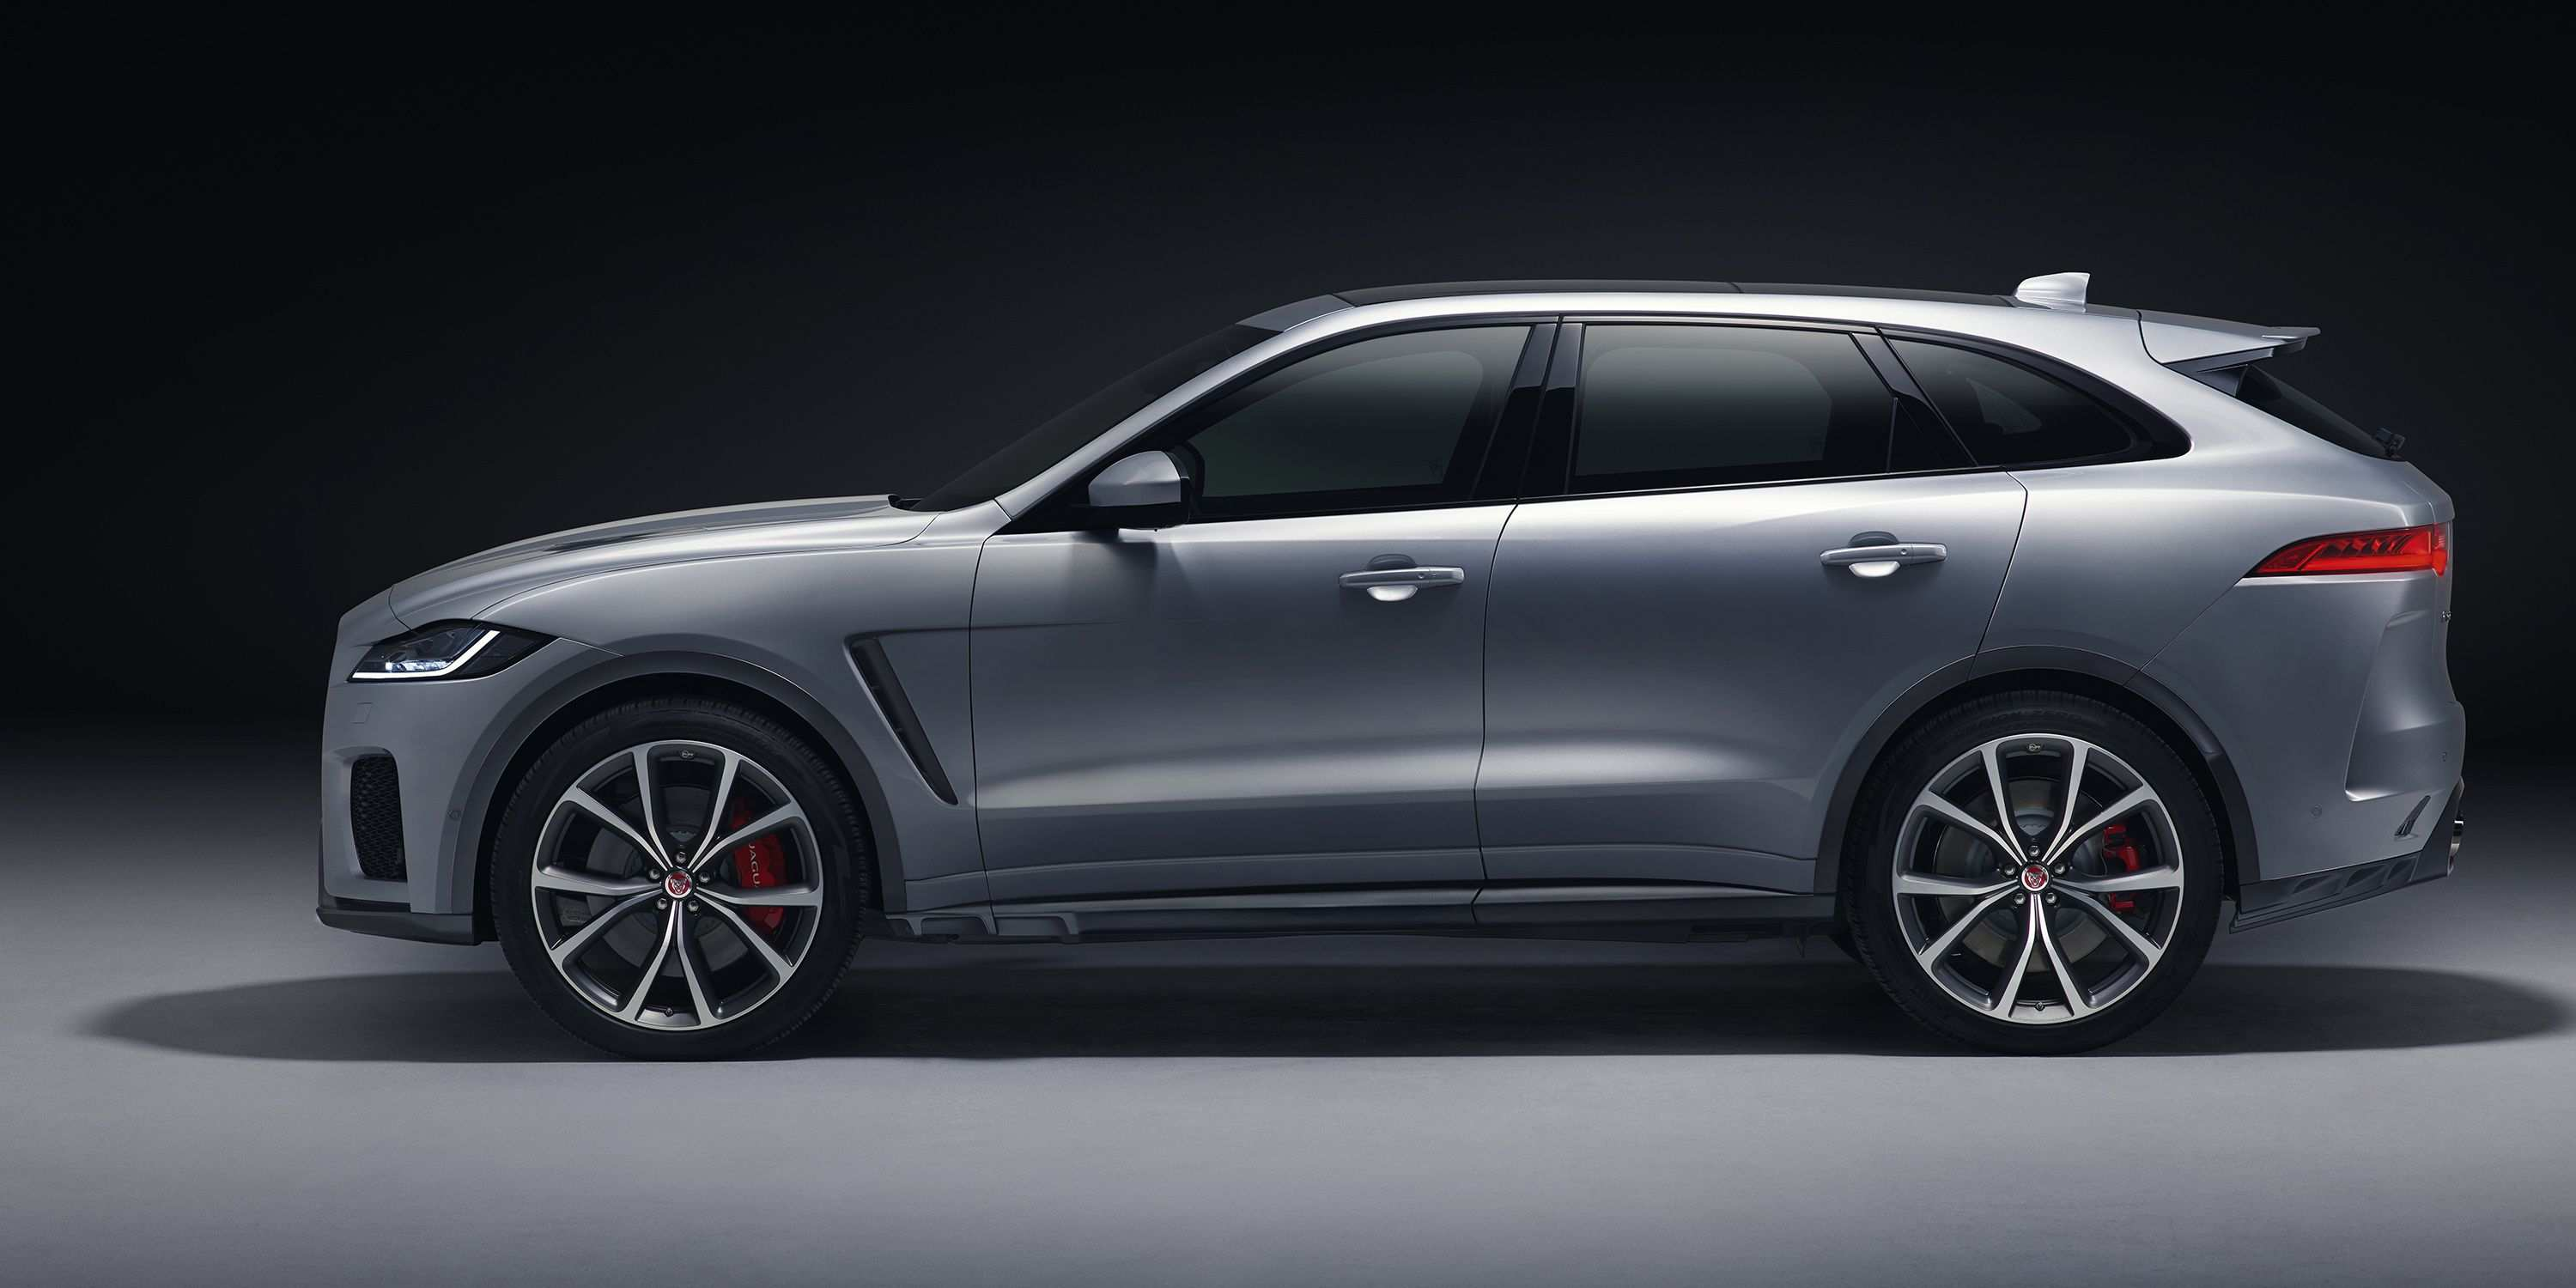 39 Gallery of New Jaguar F Pace 2020 Specs and Review for New Jaguar F Pace 2020